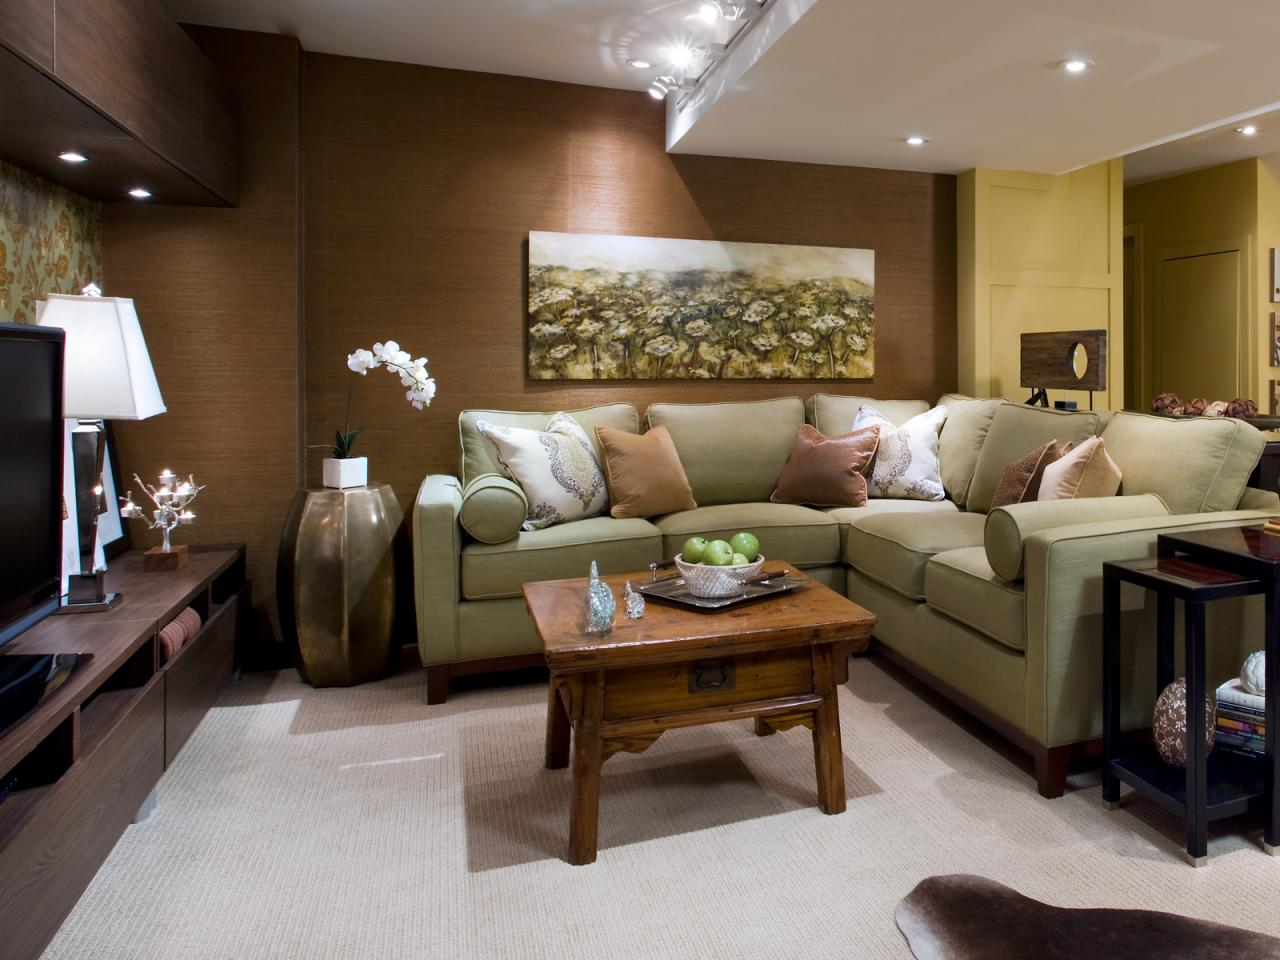 design basement ideas photo - 5